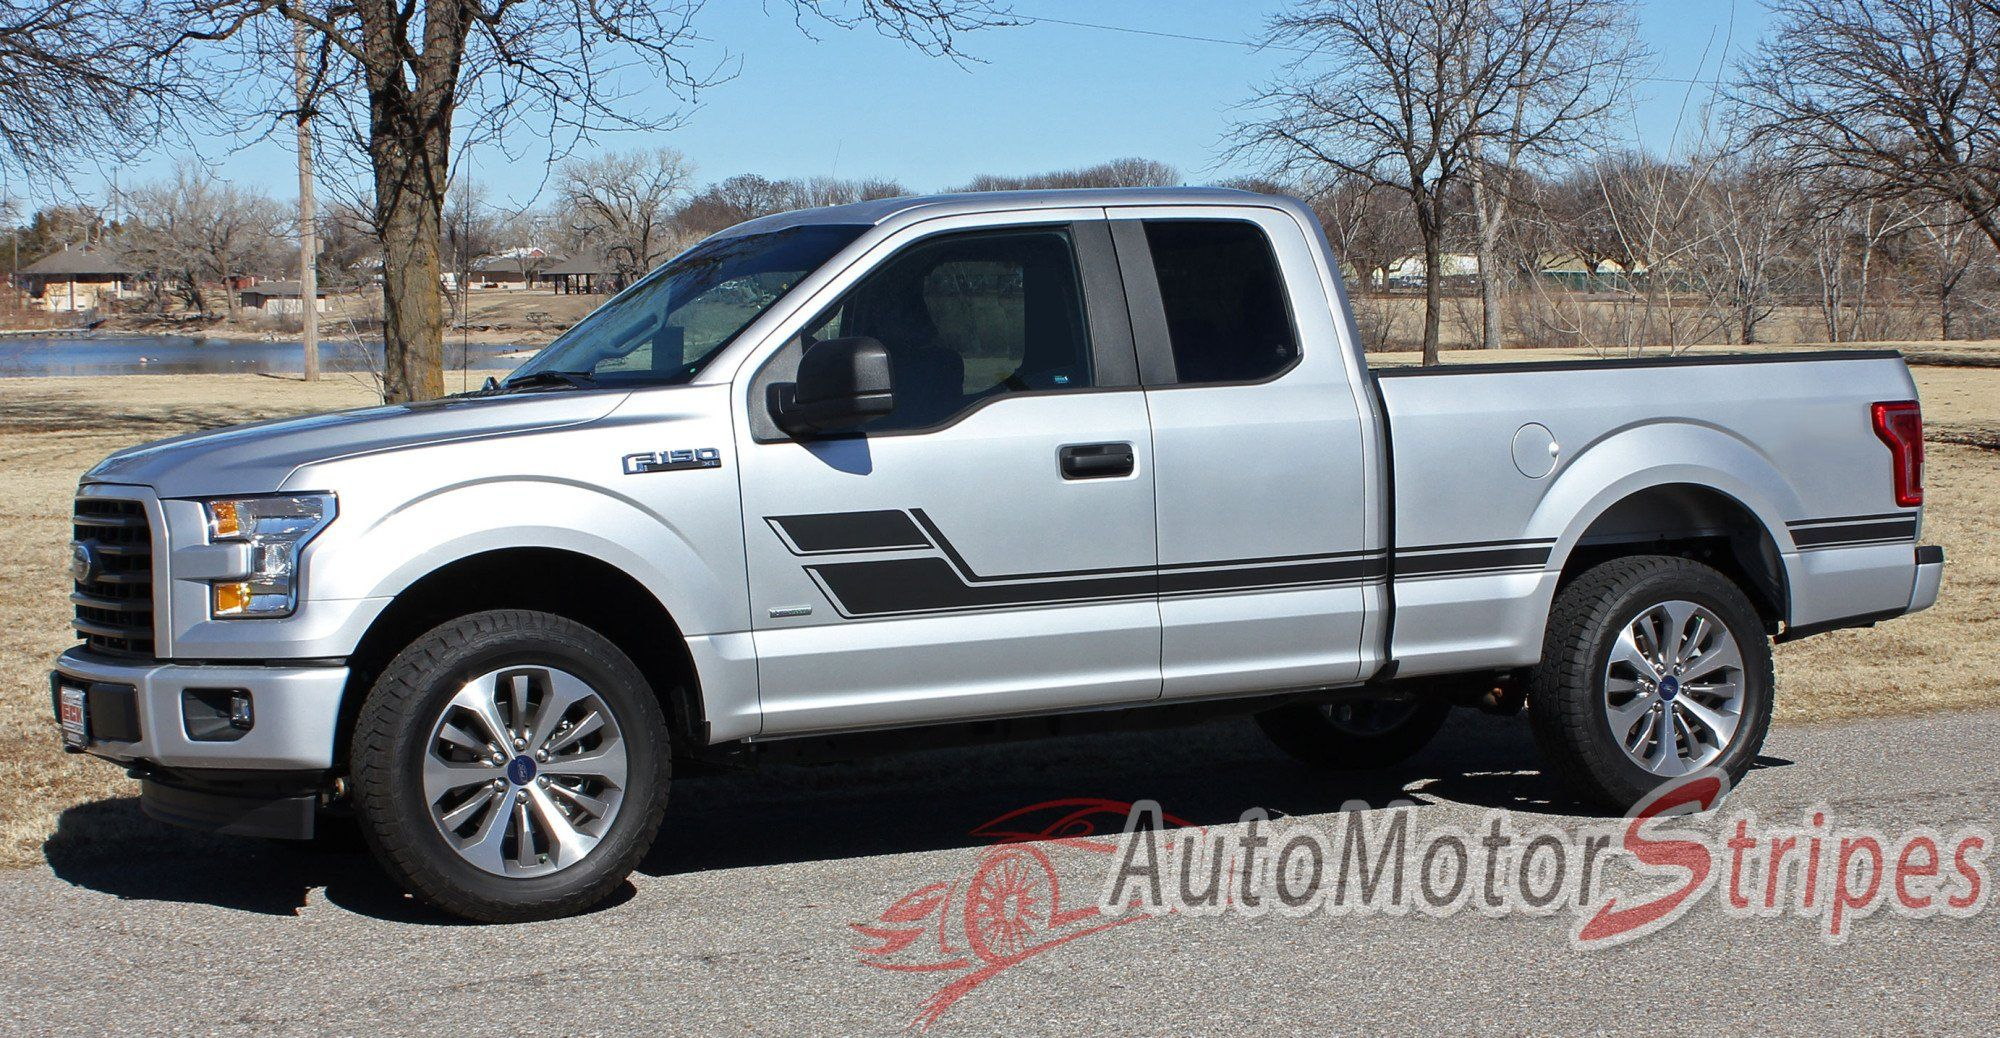 Ford F-150 Side Vinyl Graphics Kit Hockey FORCE Decals Stripes for 2015-2018